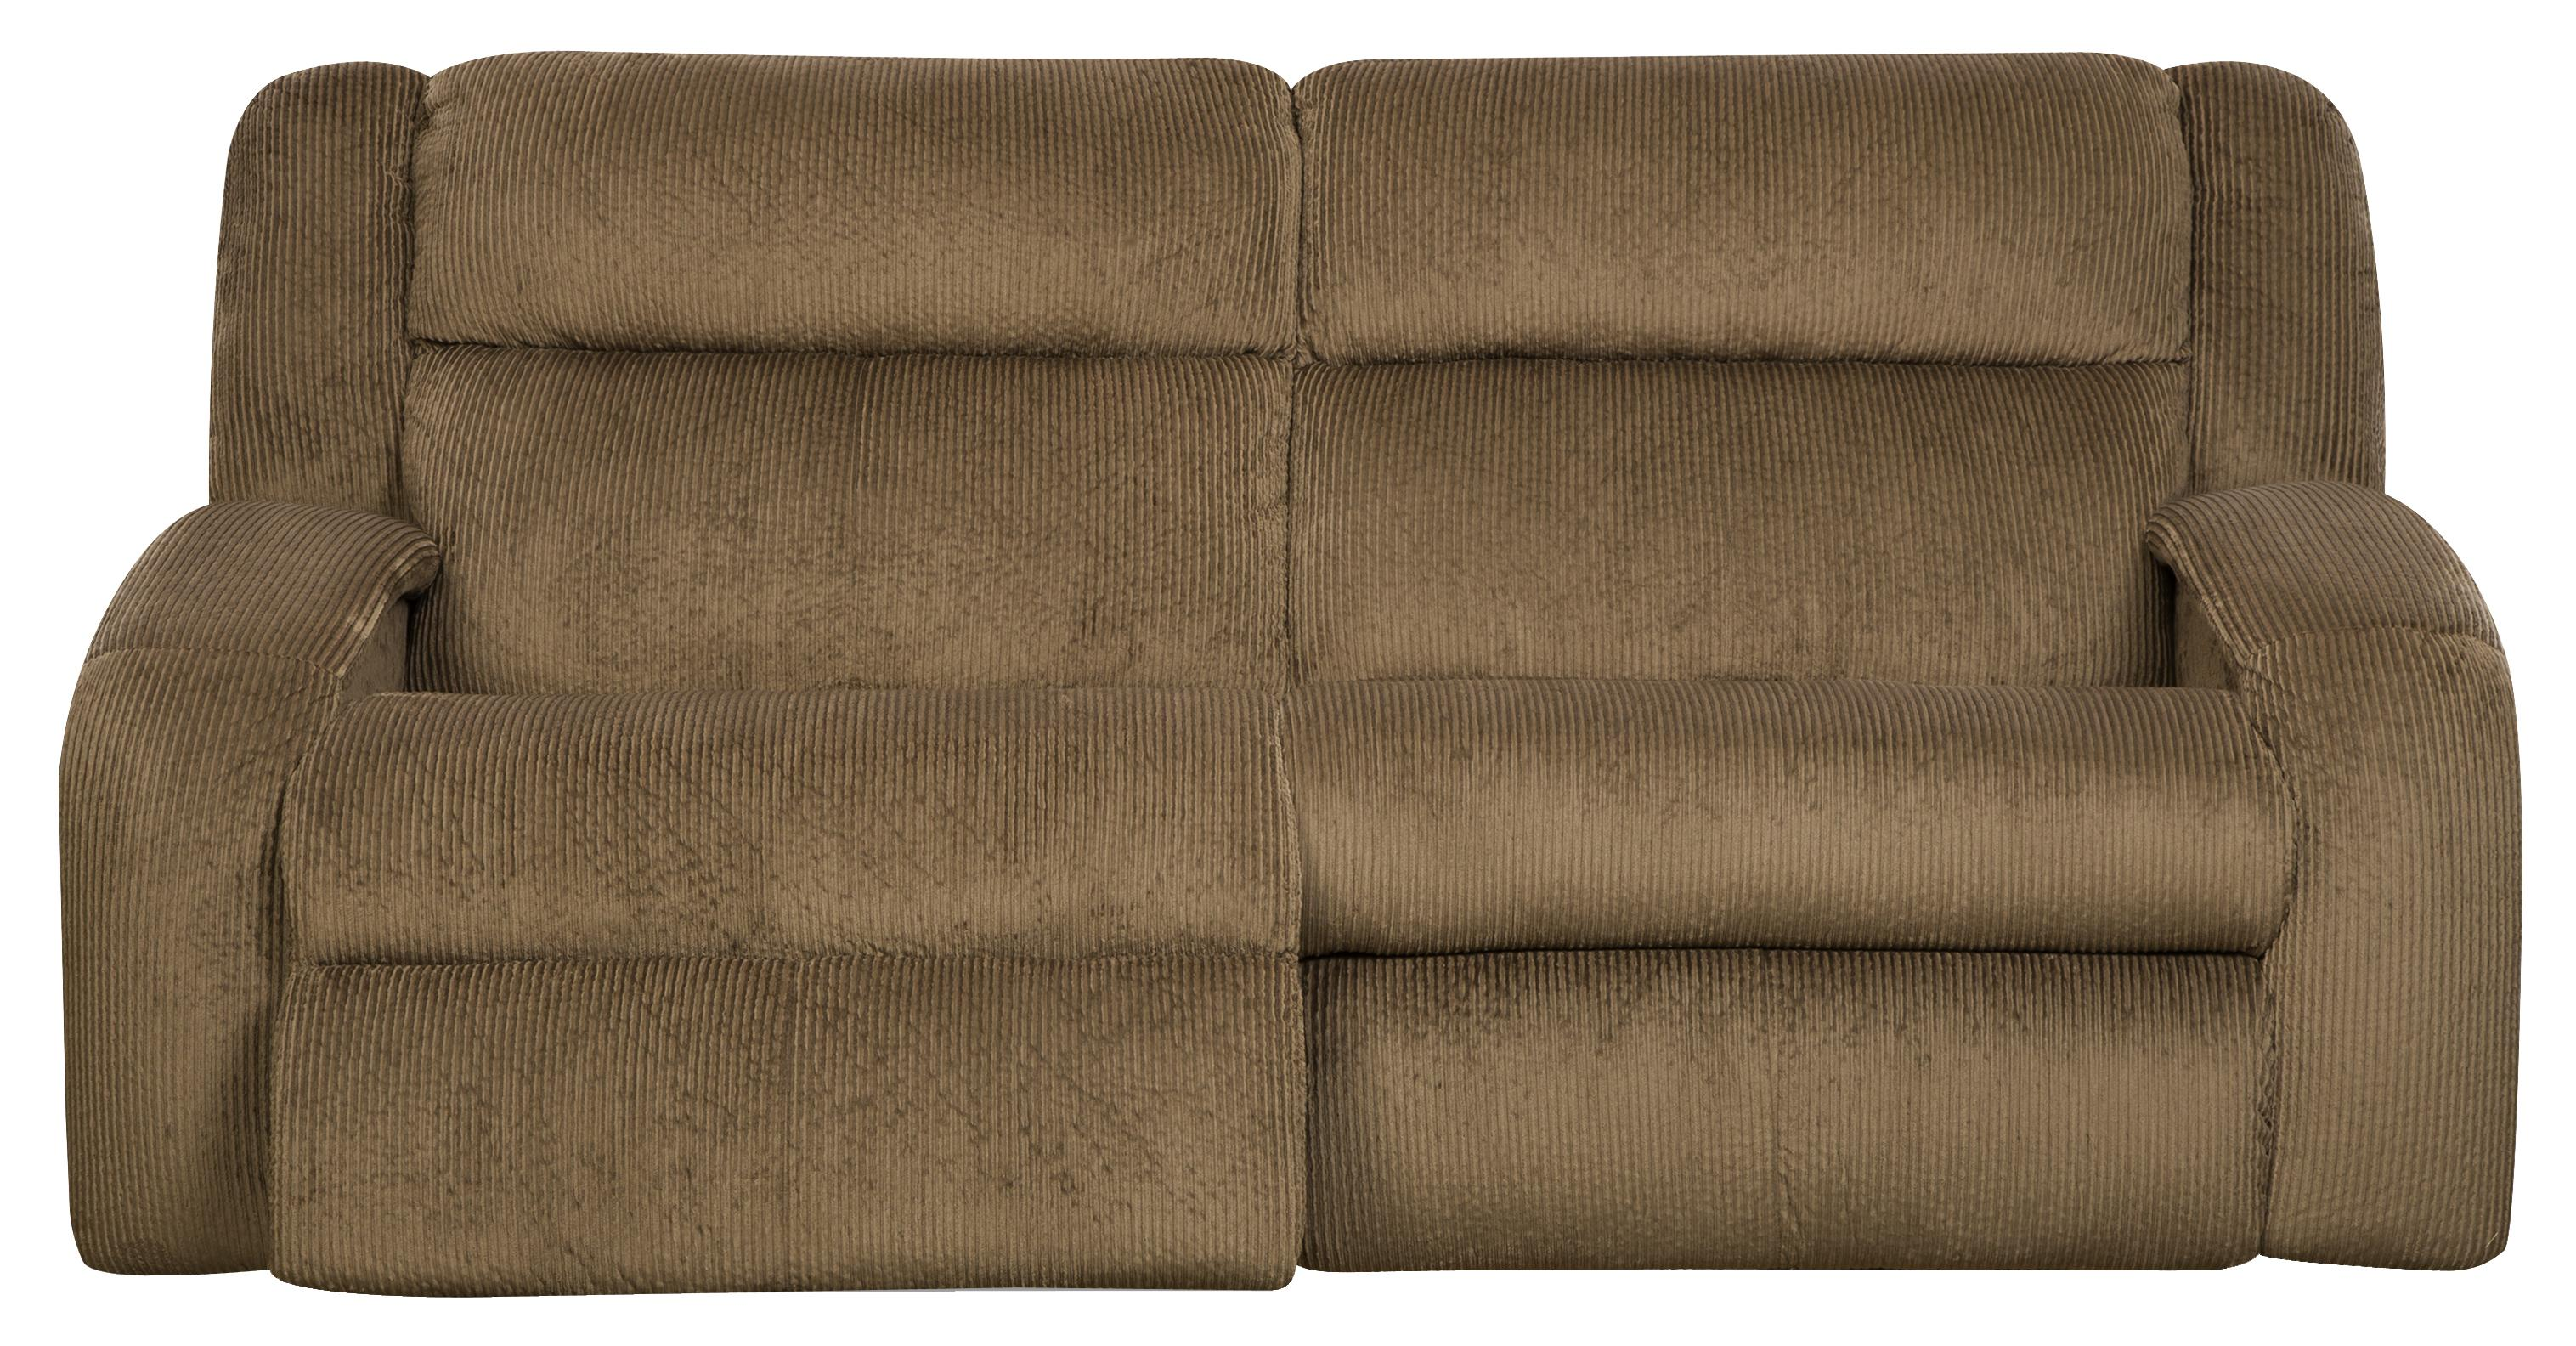 Layflat Reclining Sofa With Contemporary Style By Southern